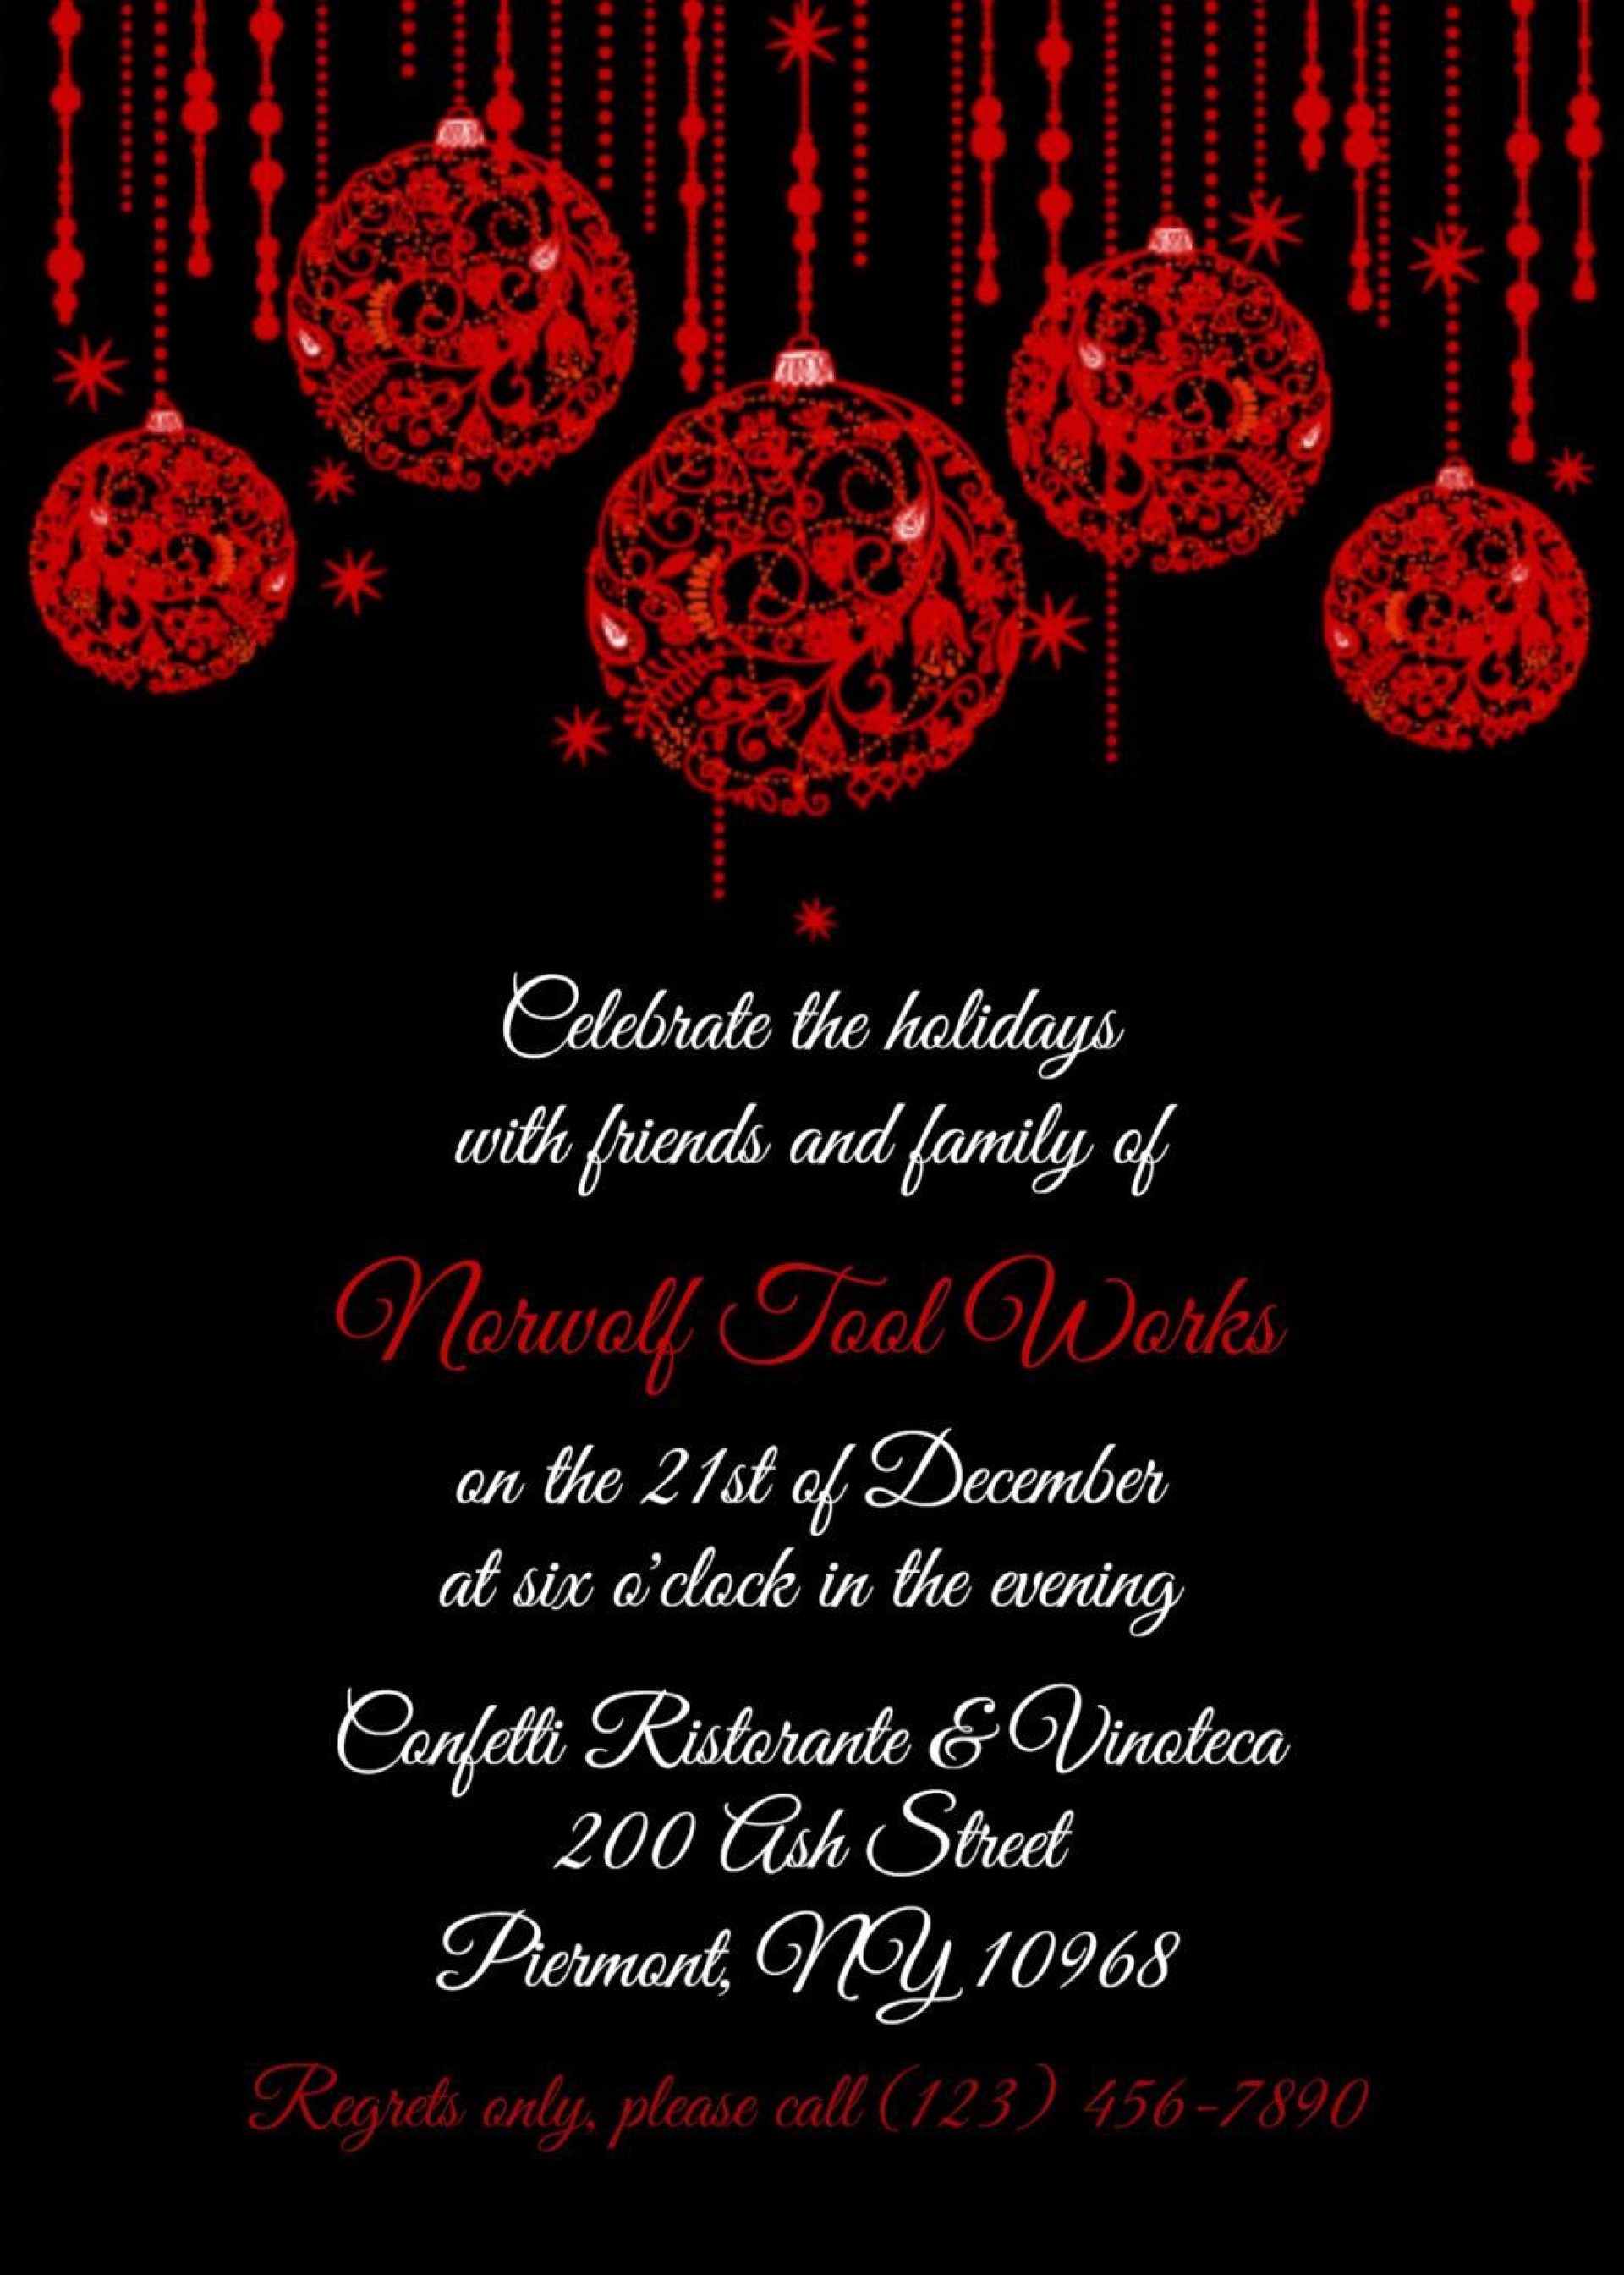 006 Unbelievable Free Busines Holiday Party Invitation Template Image  Templates Printable Office1920